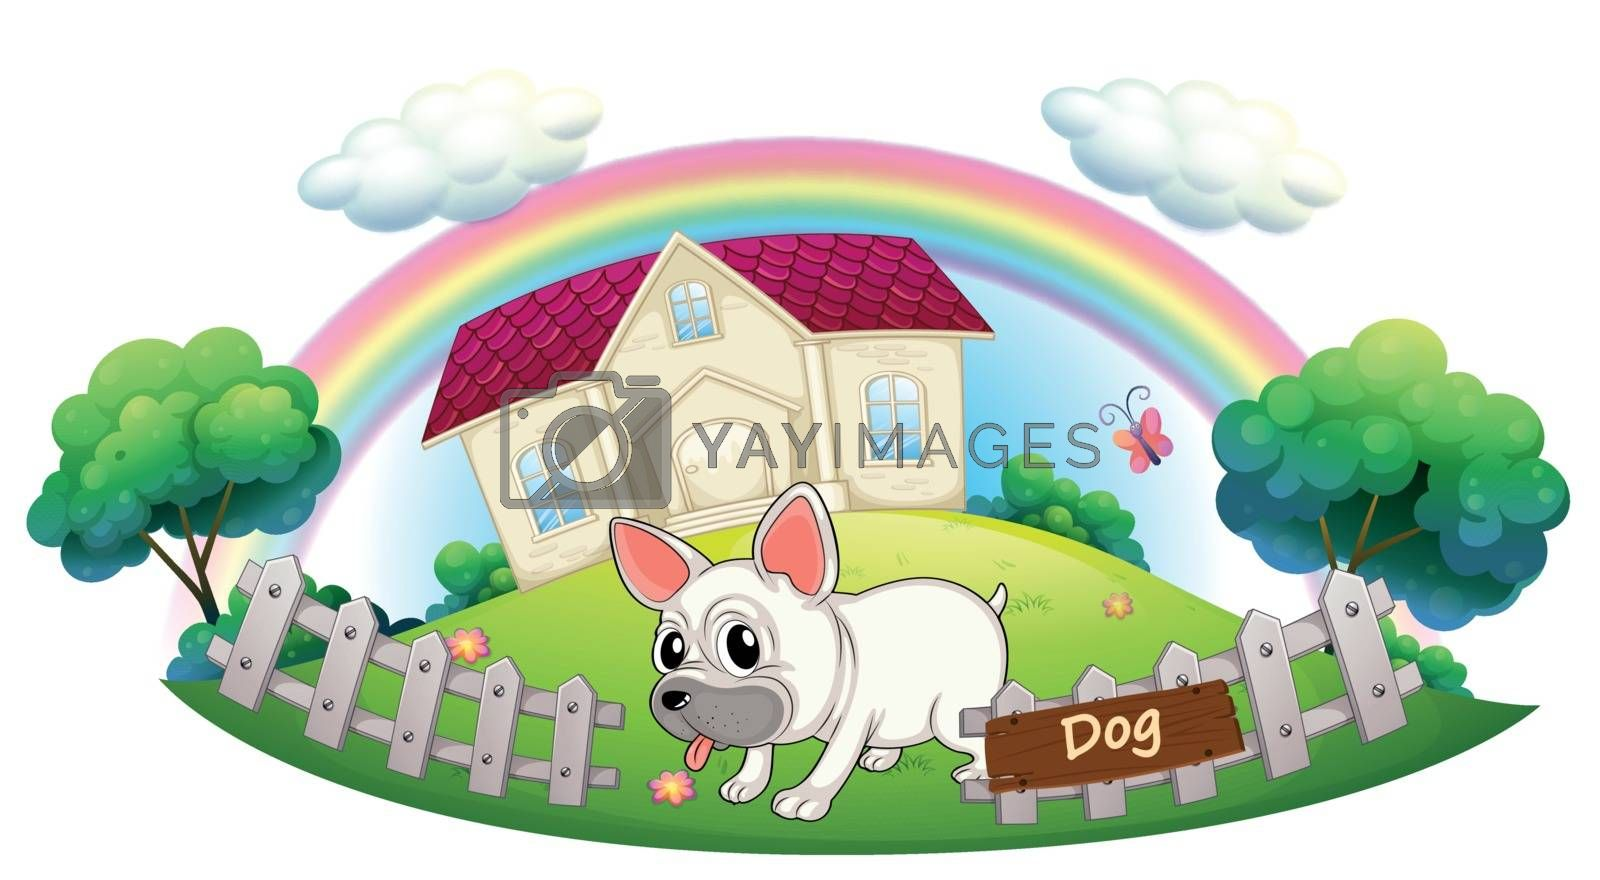 Illustration of a dog guarding a house on a white background